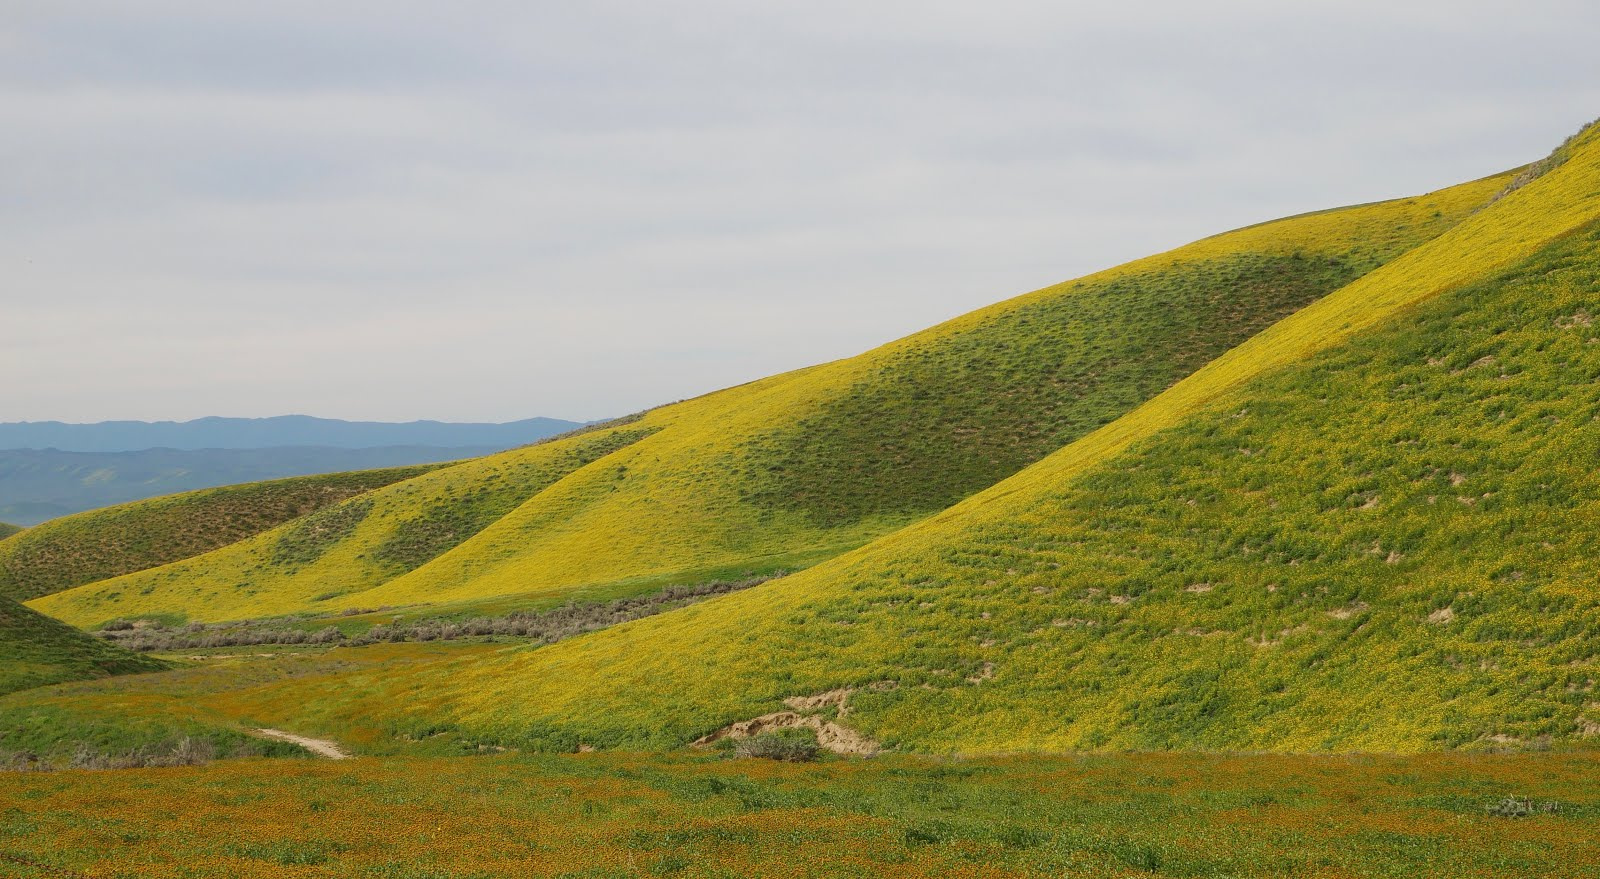 The Carrizo Plain in Super Bloom